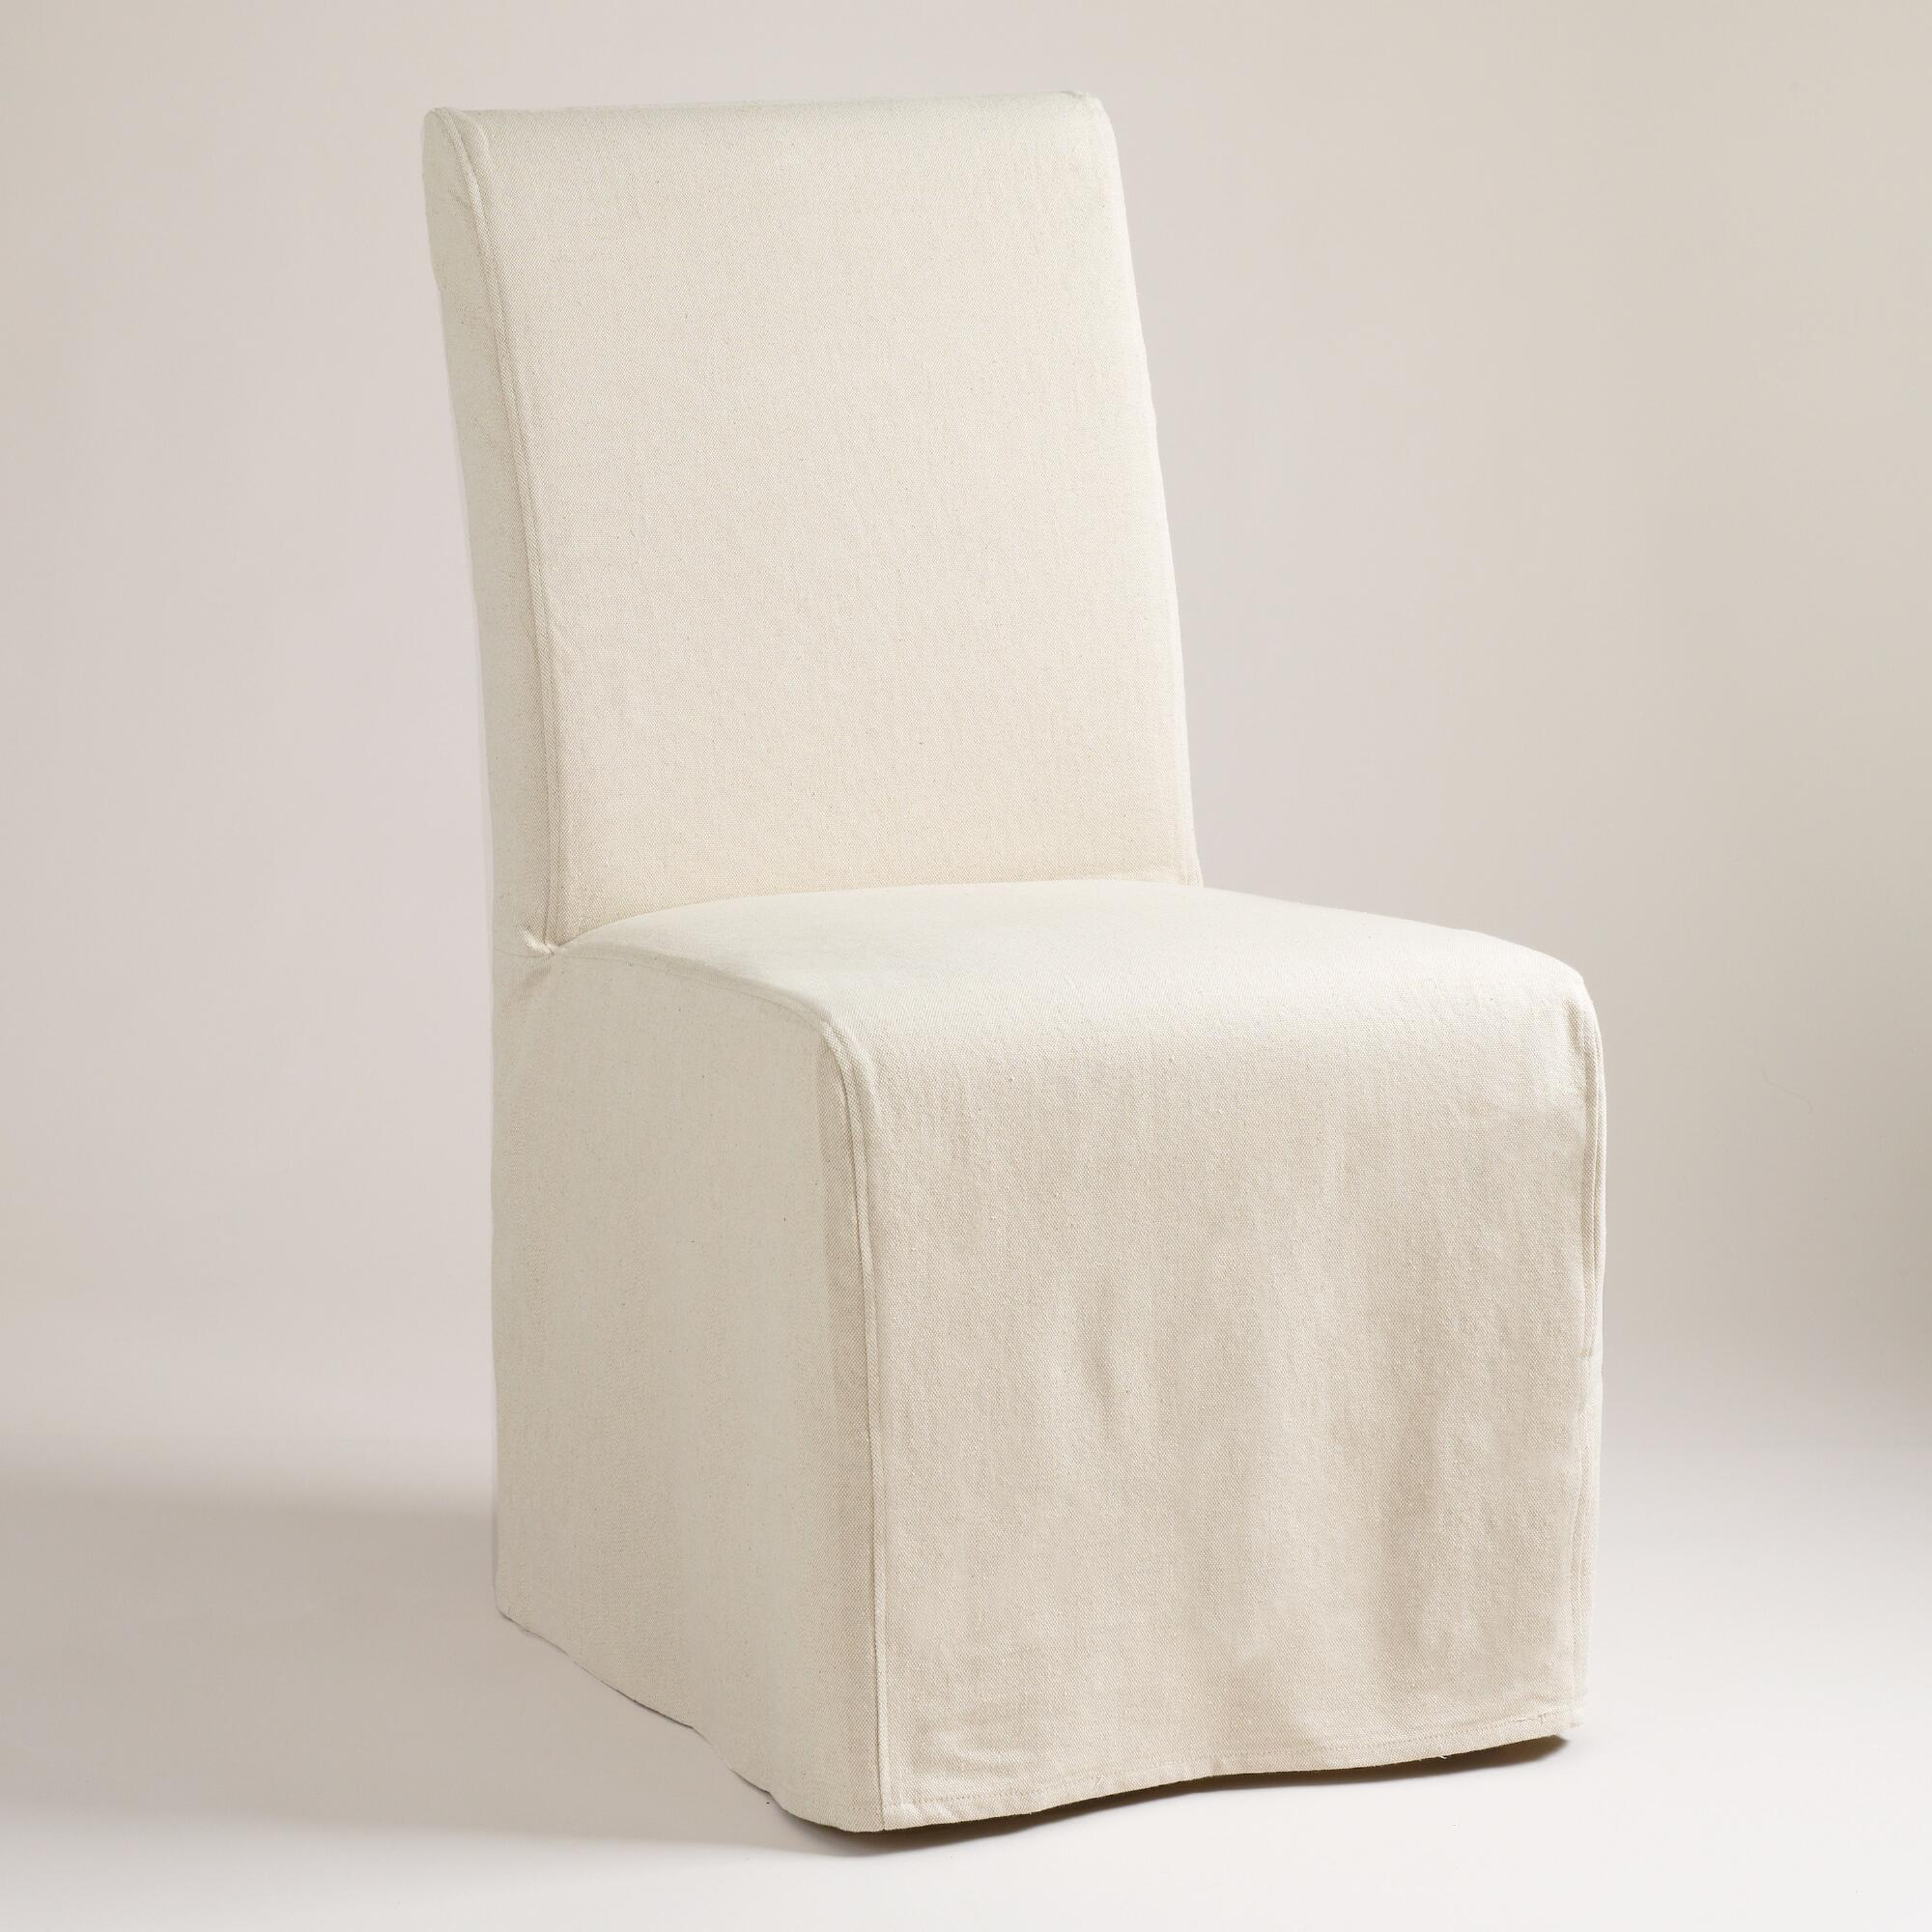 Surefit Slipcovers | Oversized Chair Slipcover | Couch Cushion Covers